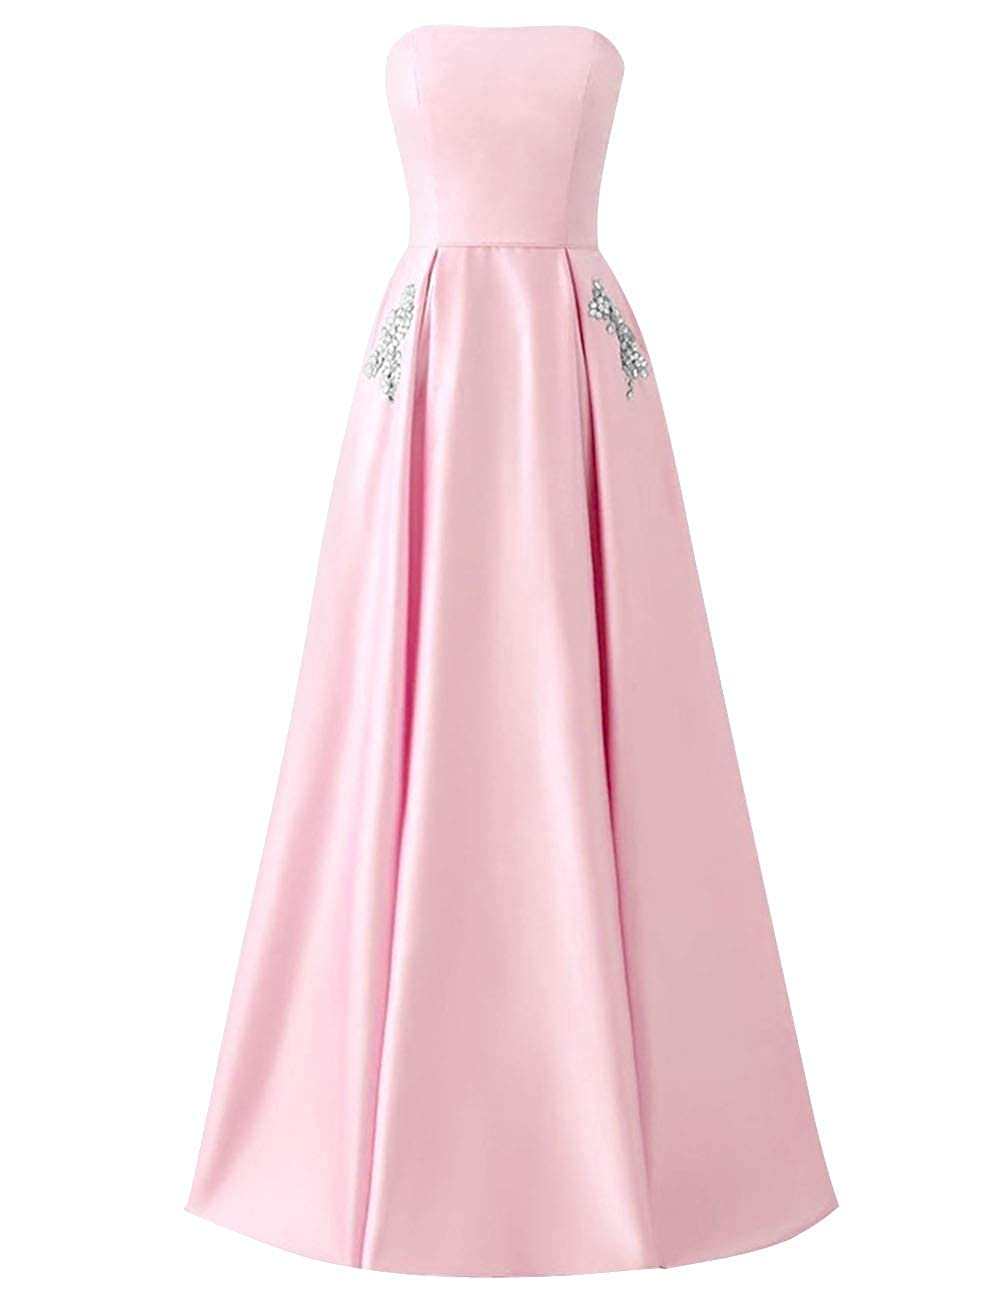 bluesh Pink MorySong Women Strapless Beading Pocket Prom Dress Satin Long Evening Party Gown